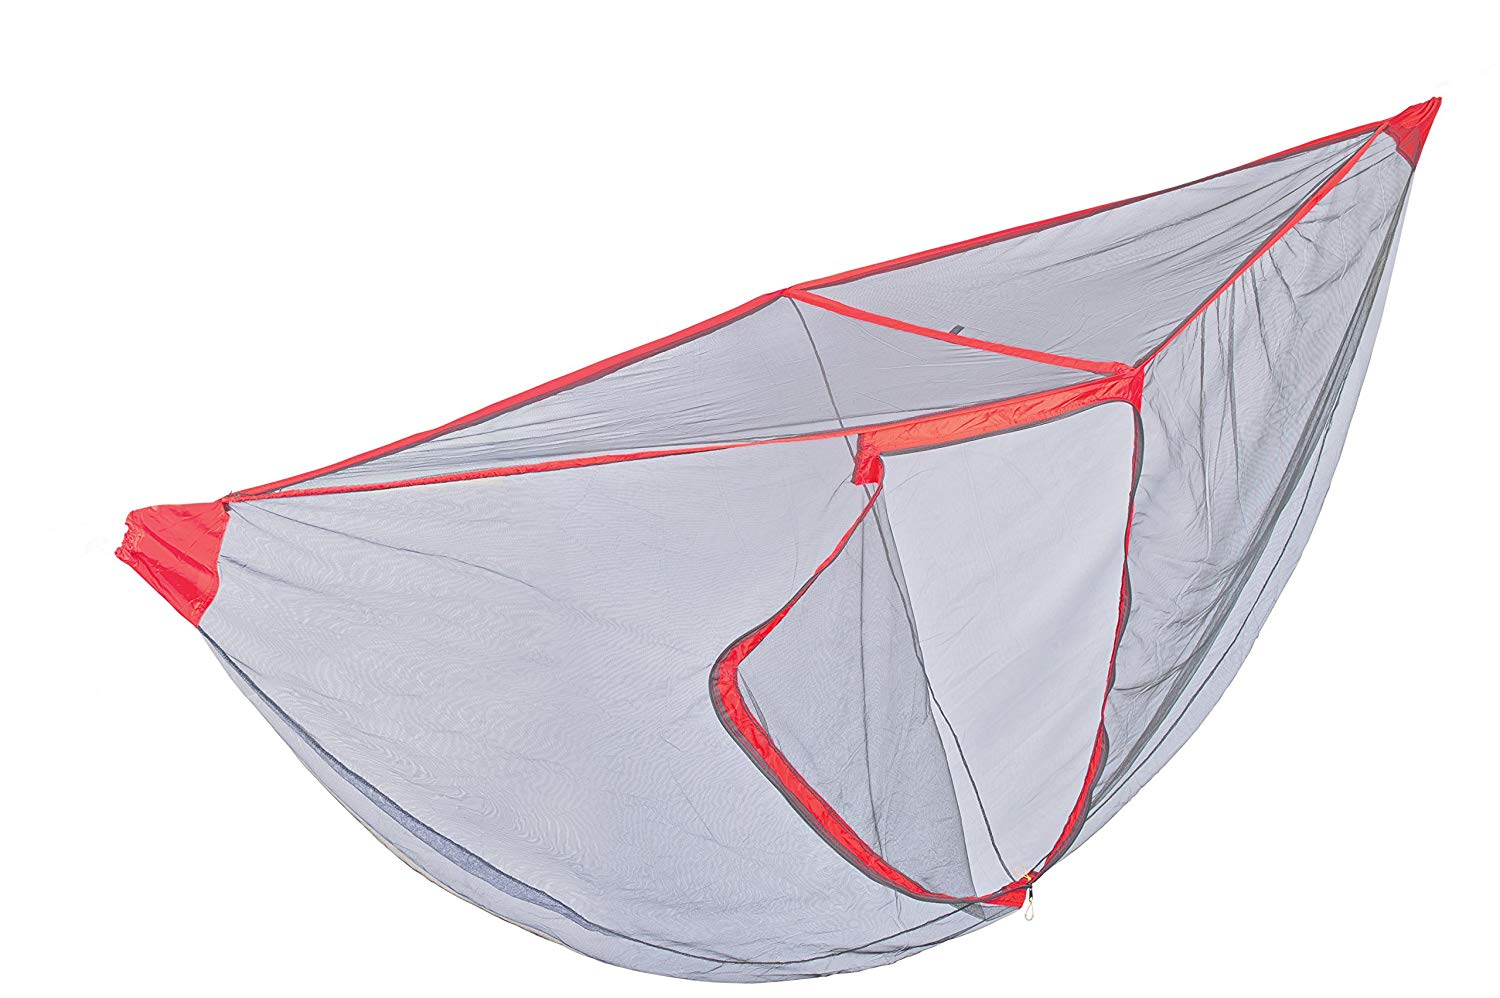 Top 10 Best Bug Net For Hammock Camping 2020 Reviews 1